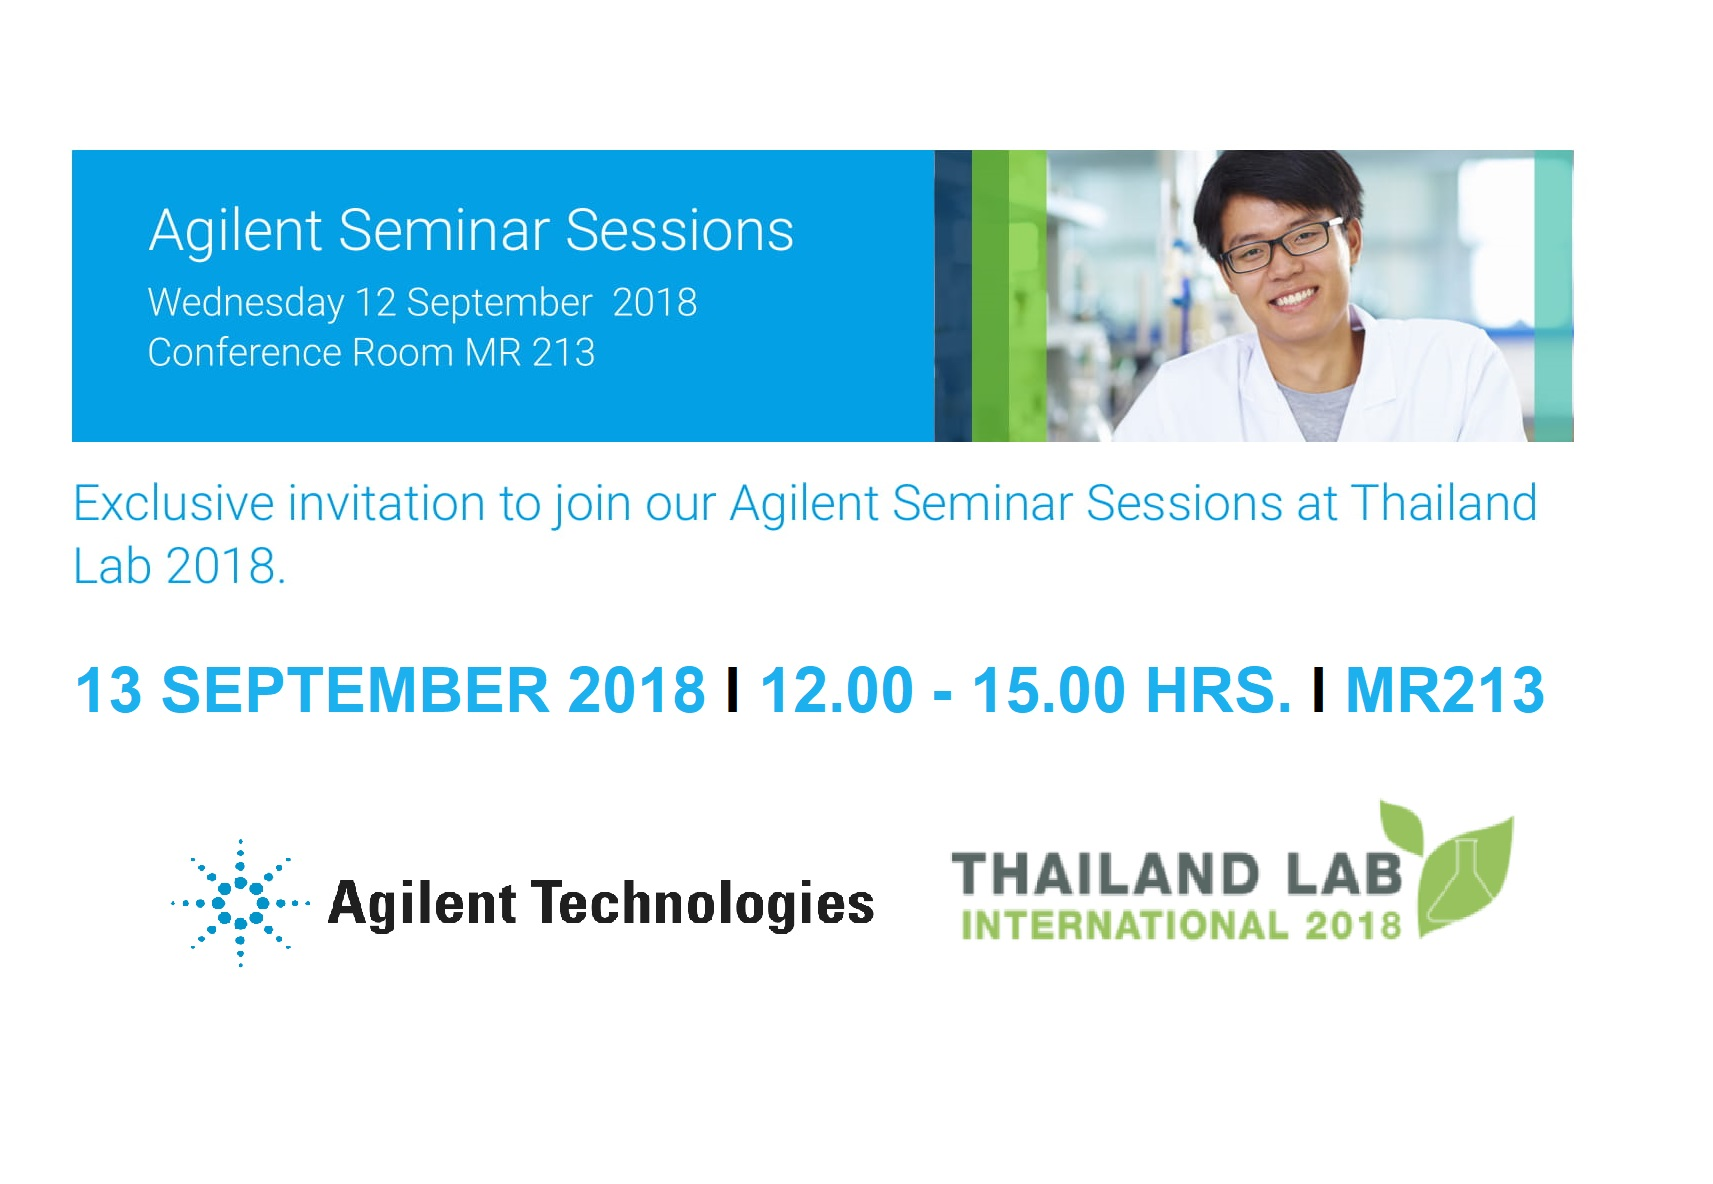 Exclusive invitation to join us at the Agilent Seminar Sessions